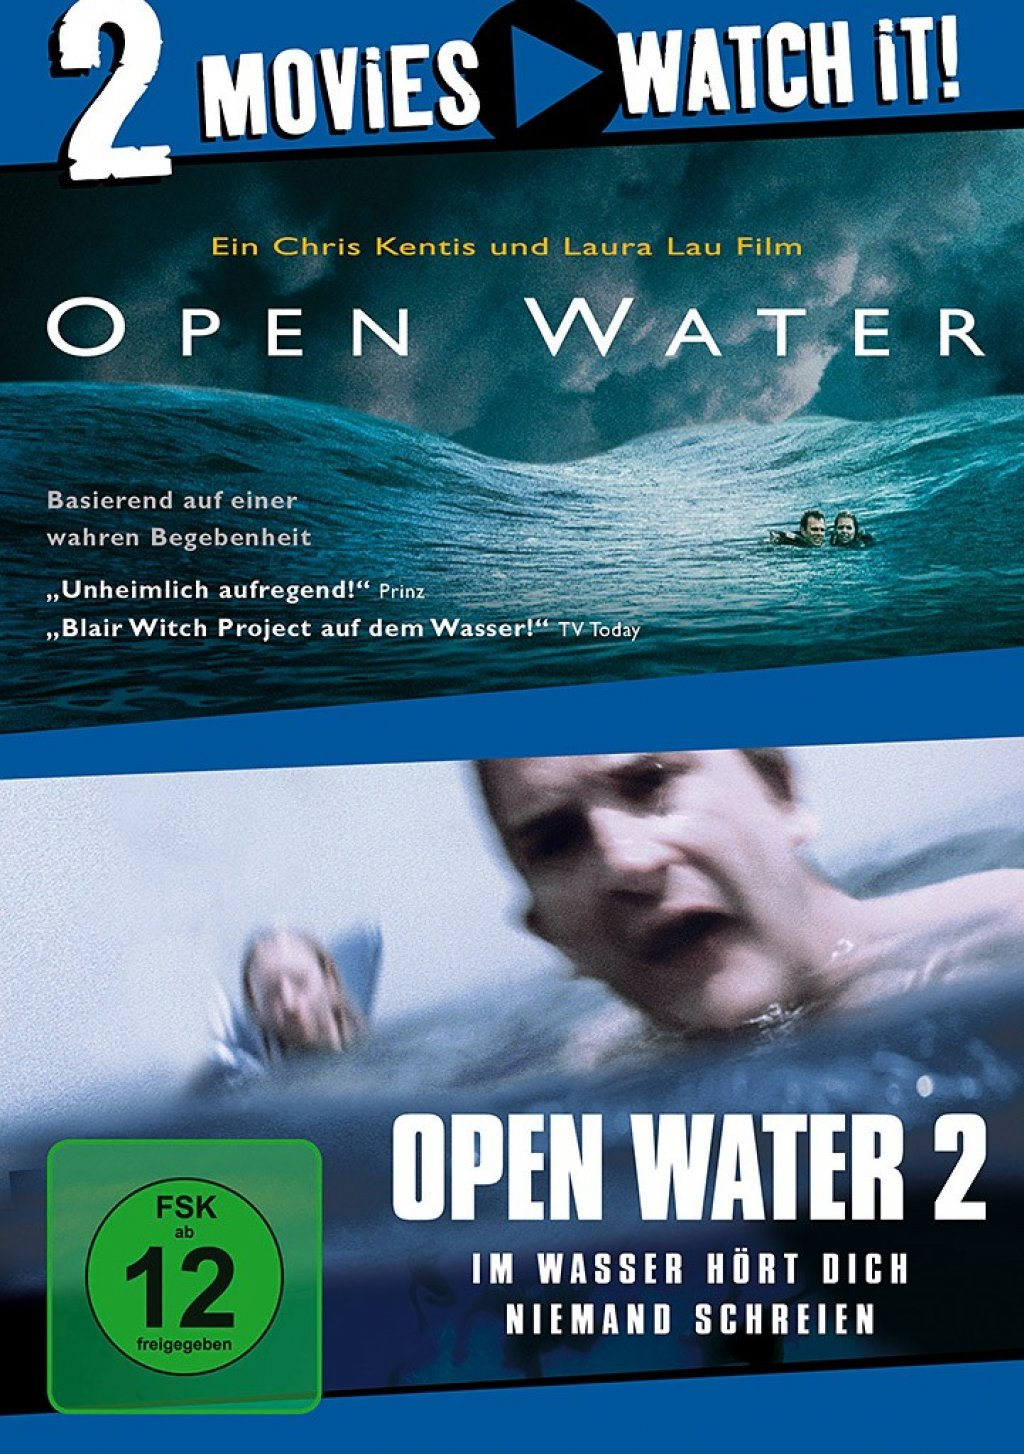 Open Water 1 & 2 - 2 Movies (DVD)